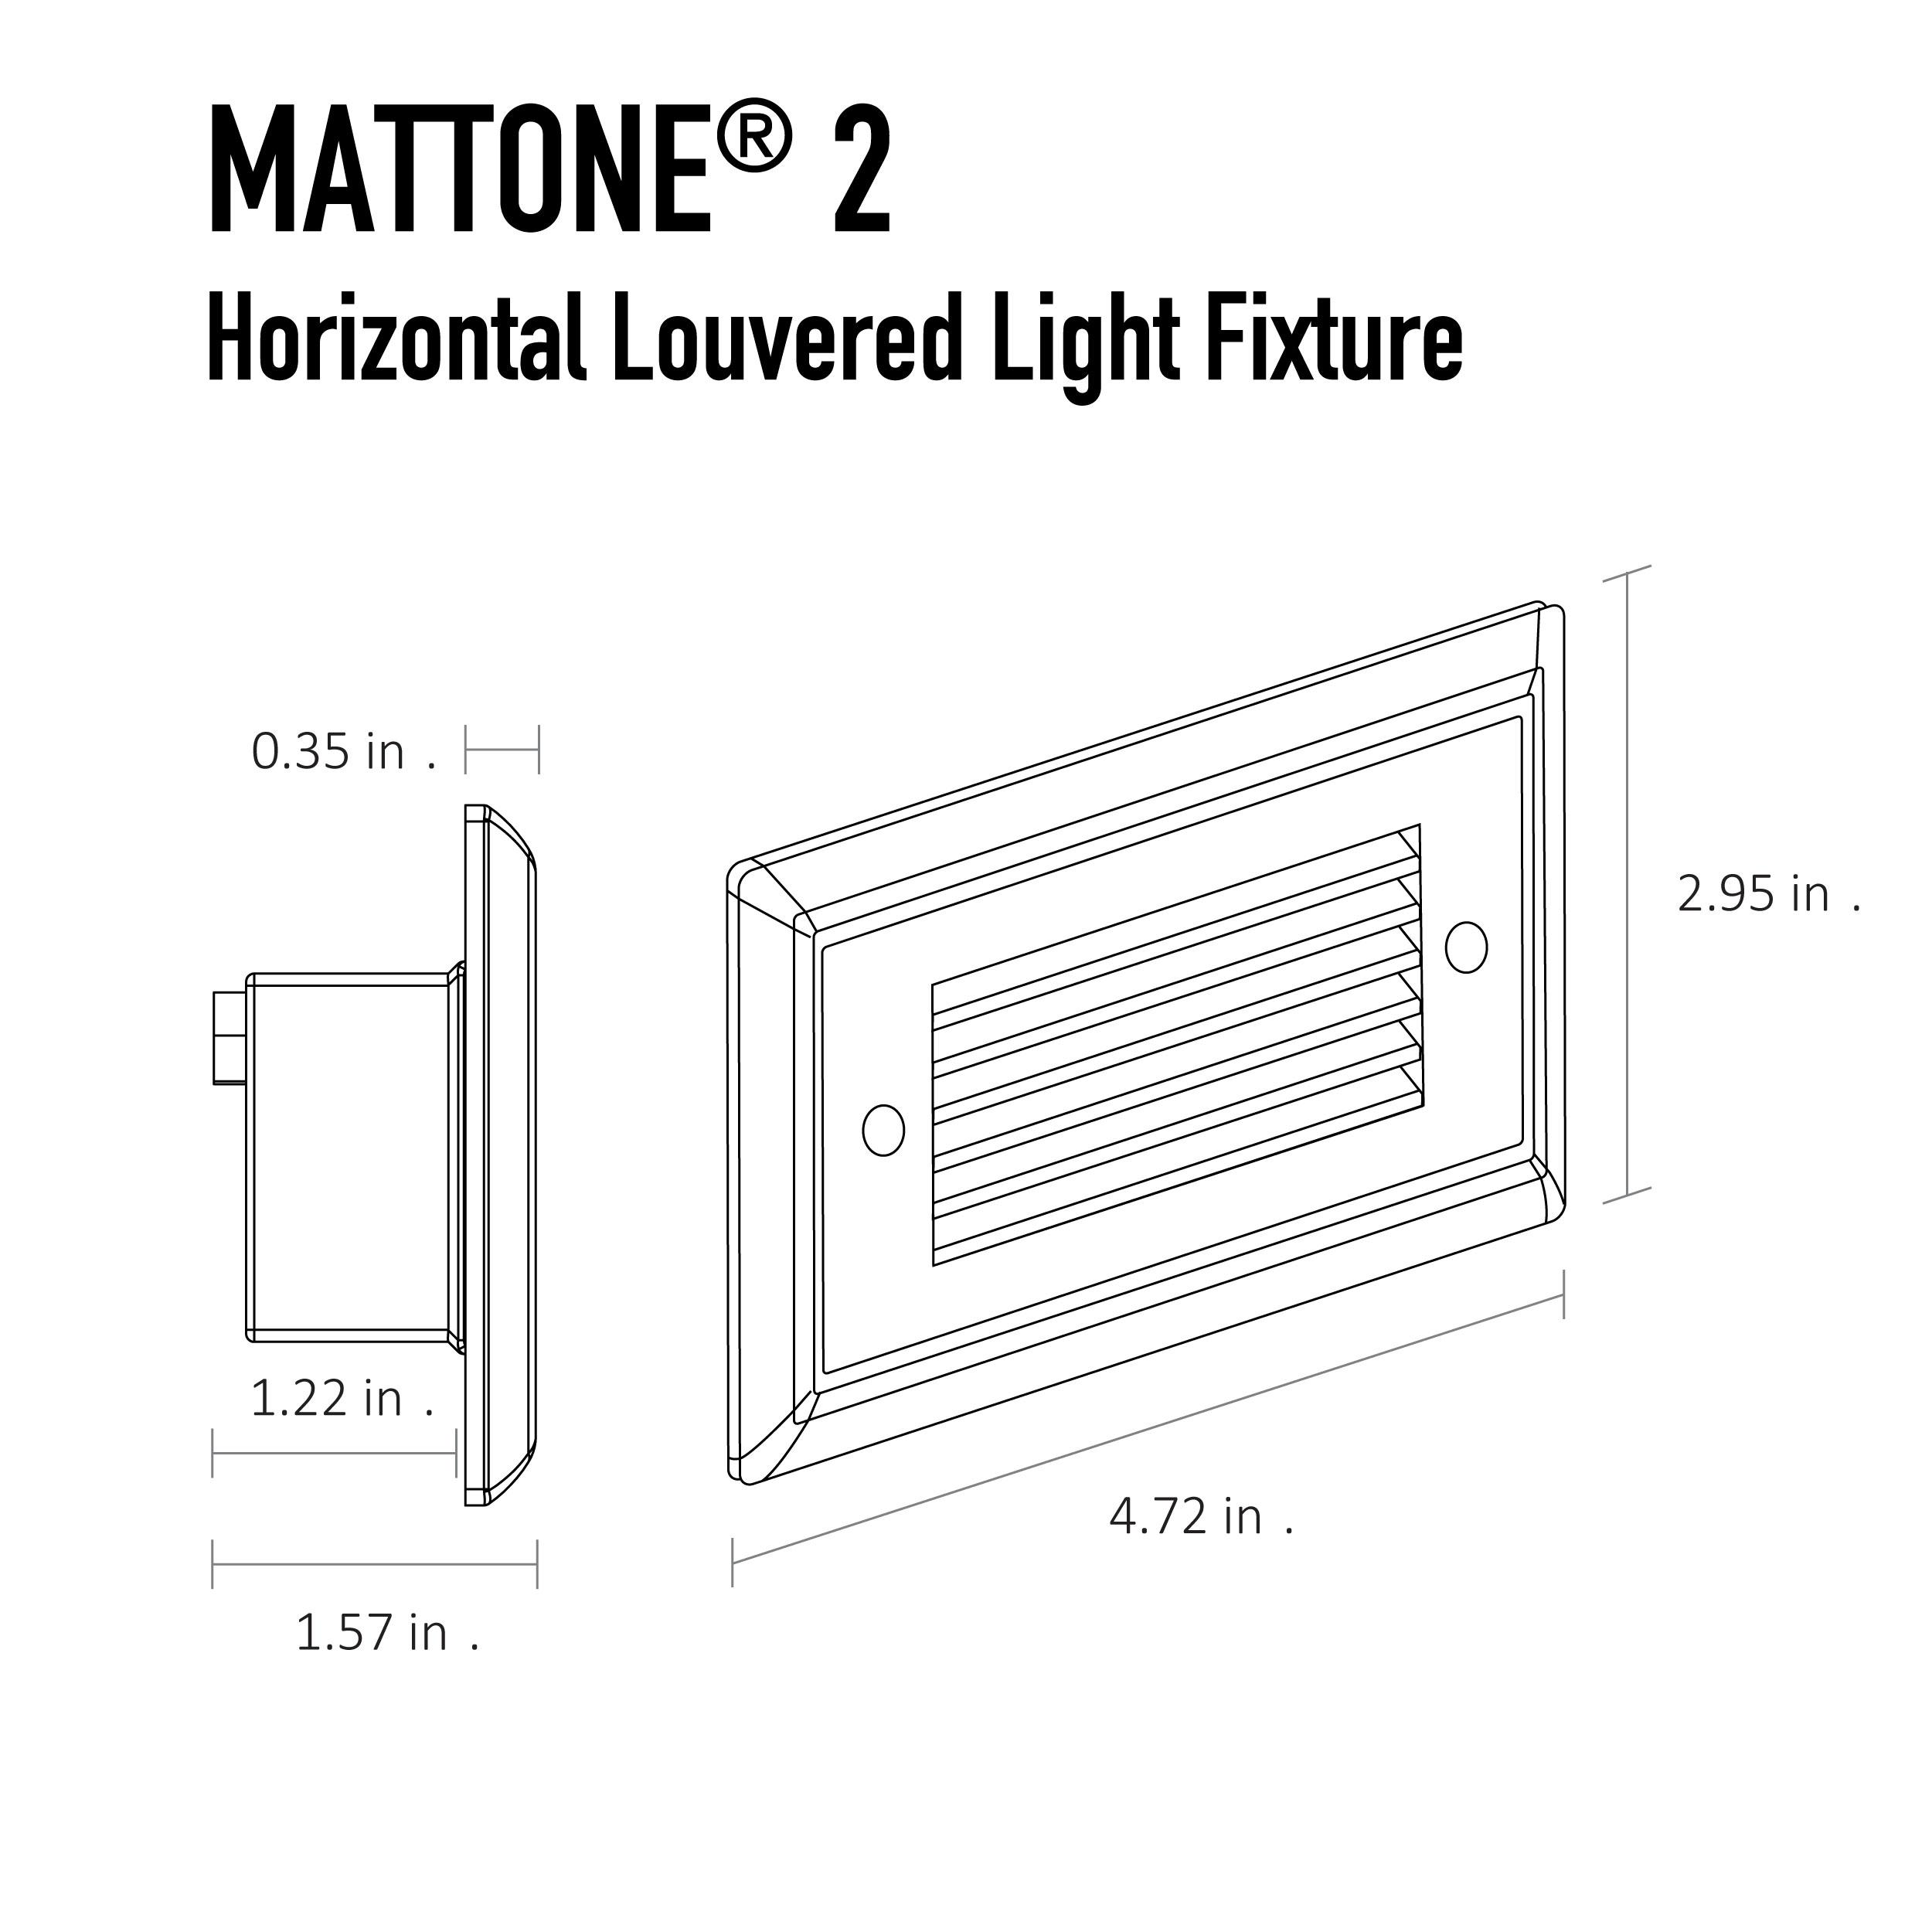 mattone u00ae 2 direct wire led step light